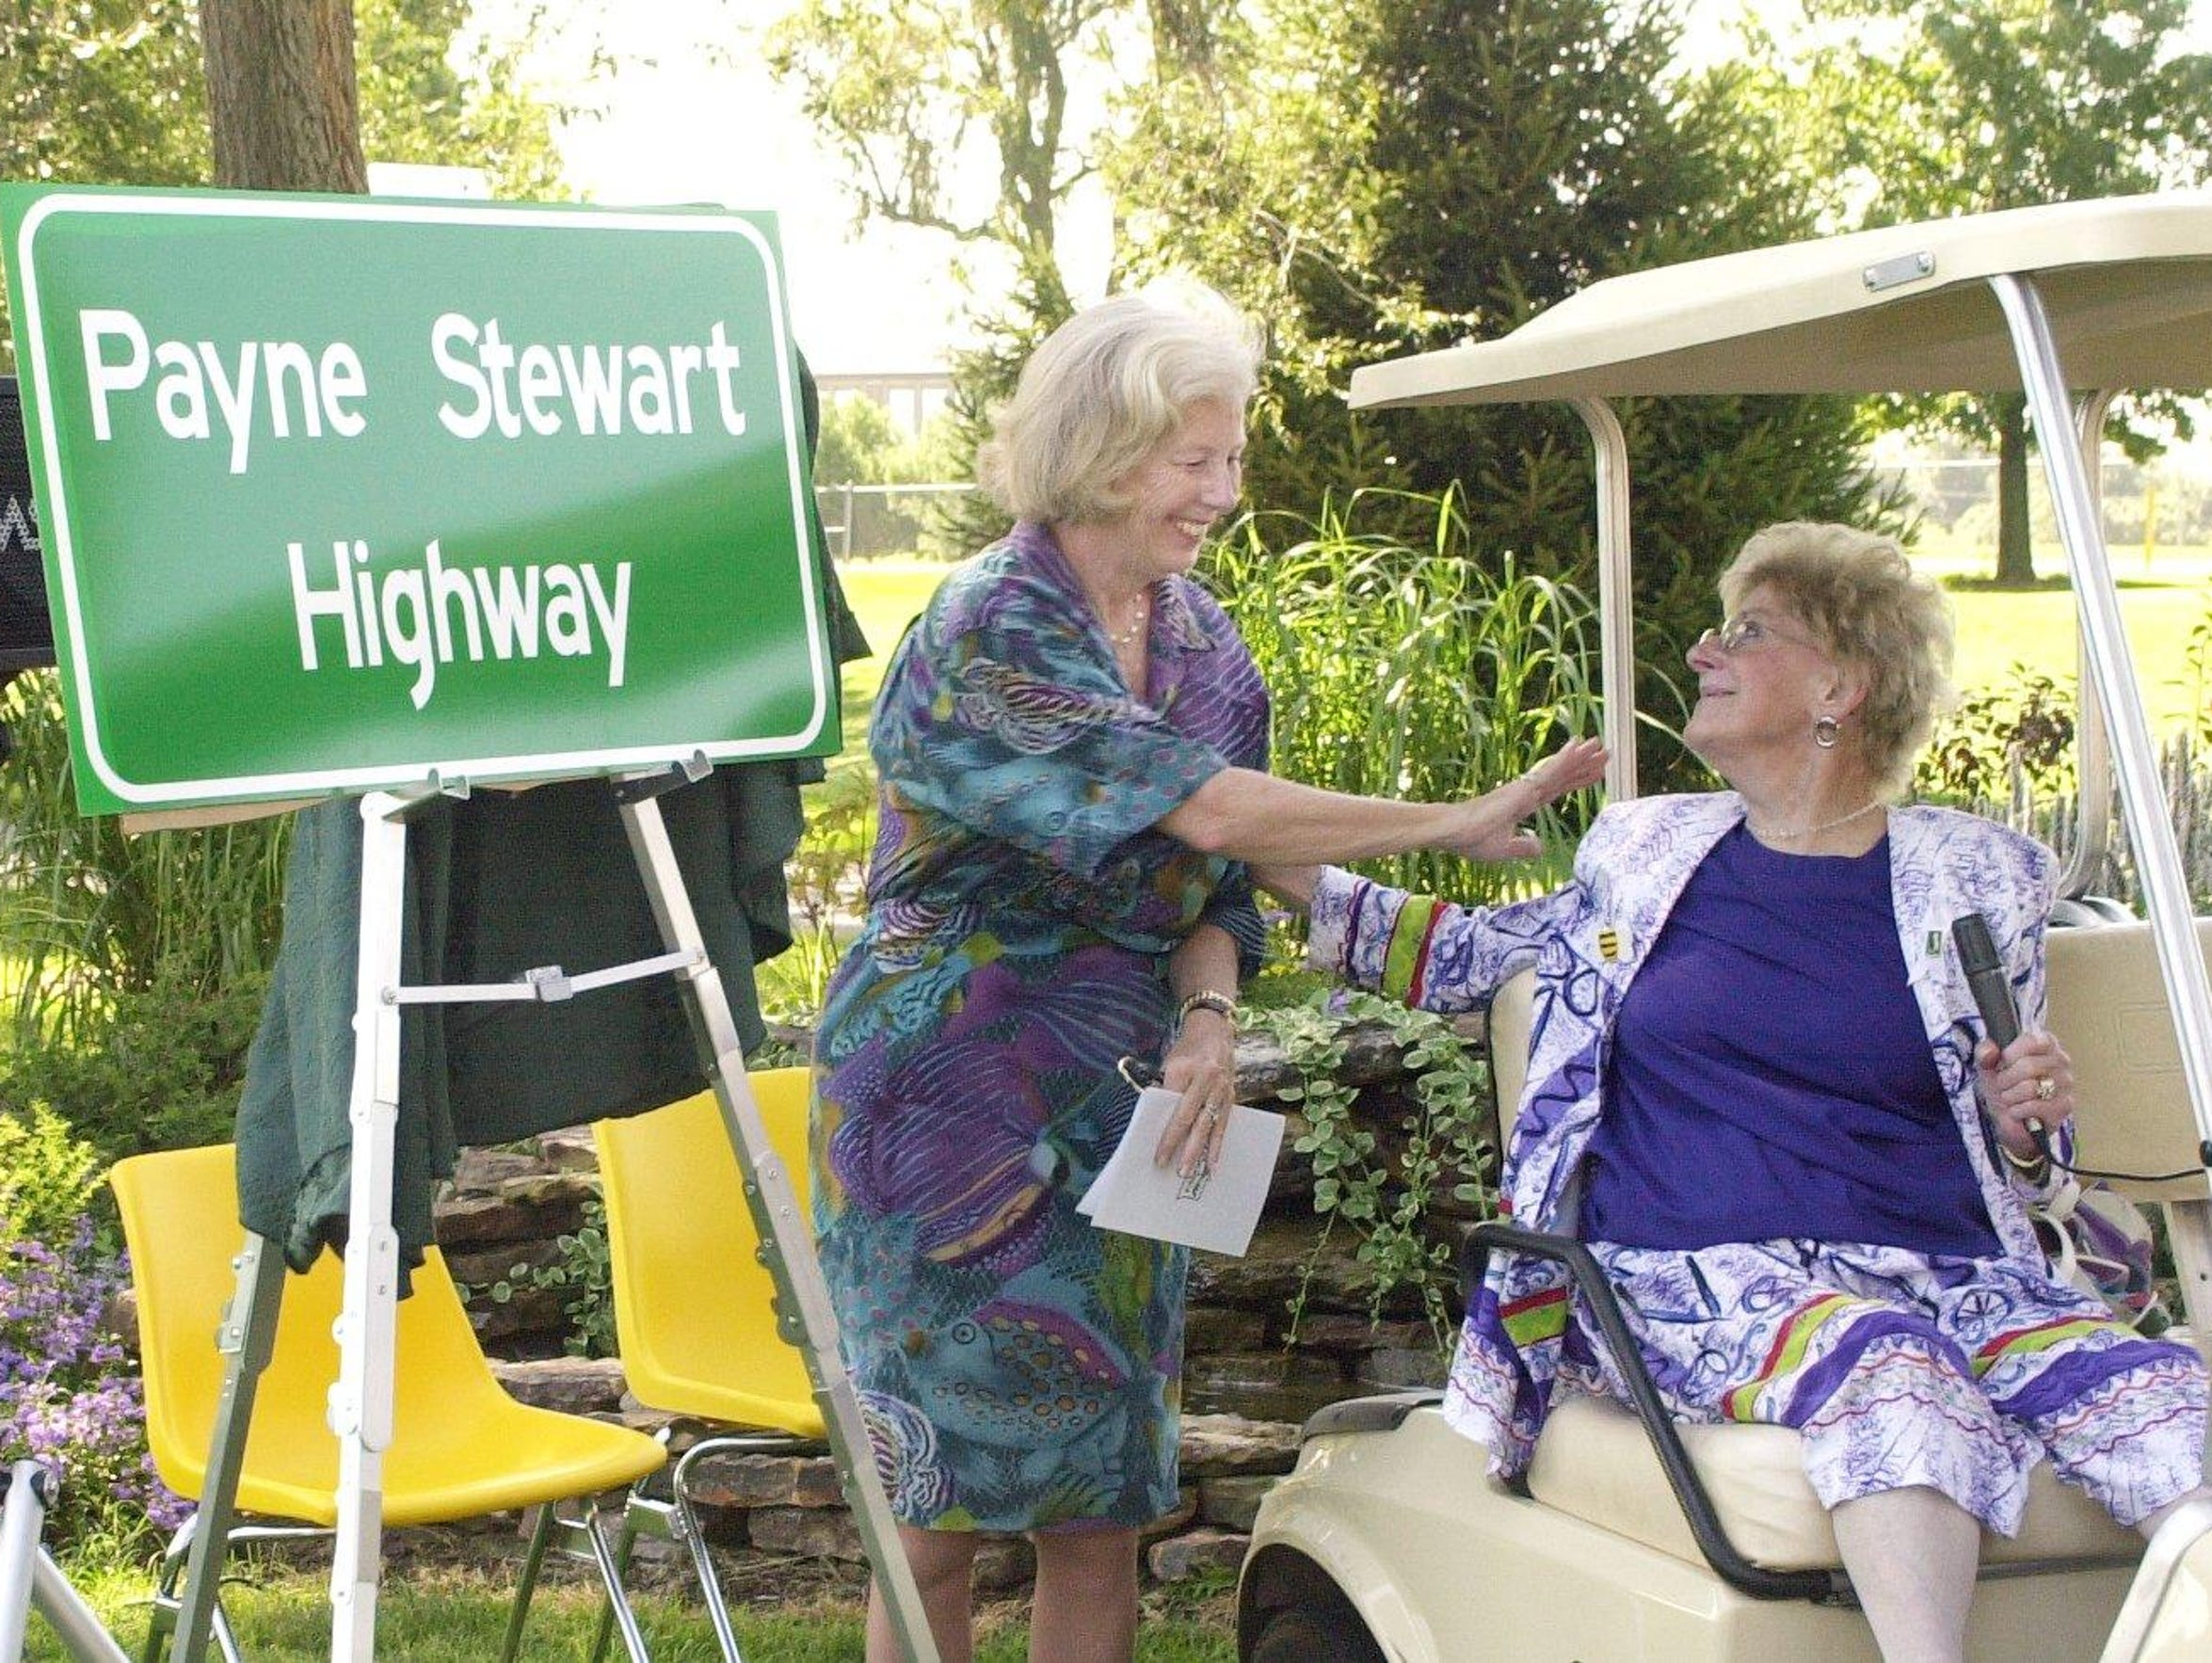 Late golfer Payne Stewart's mother Bee Stewart, right,